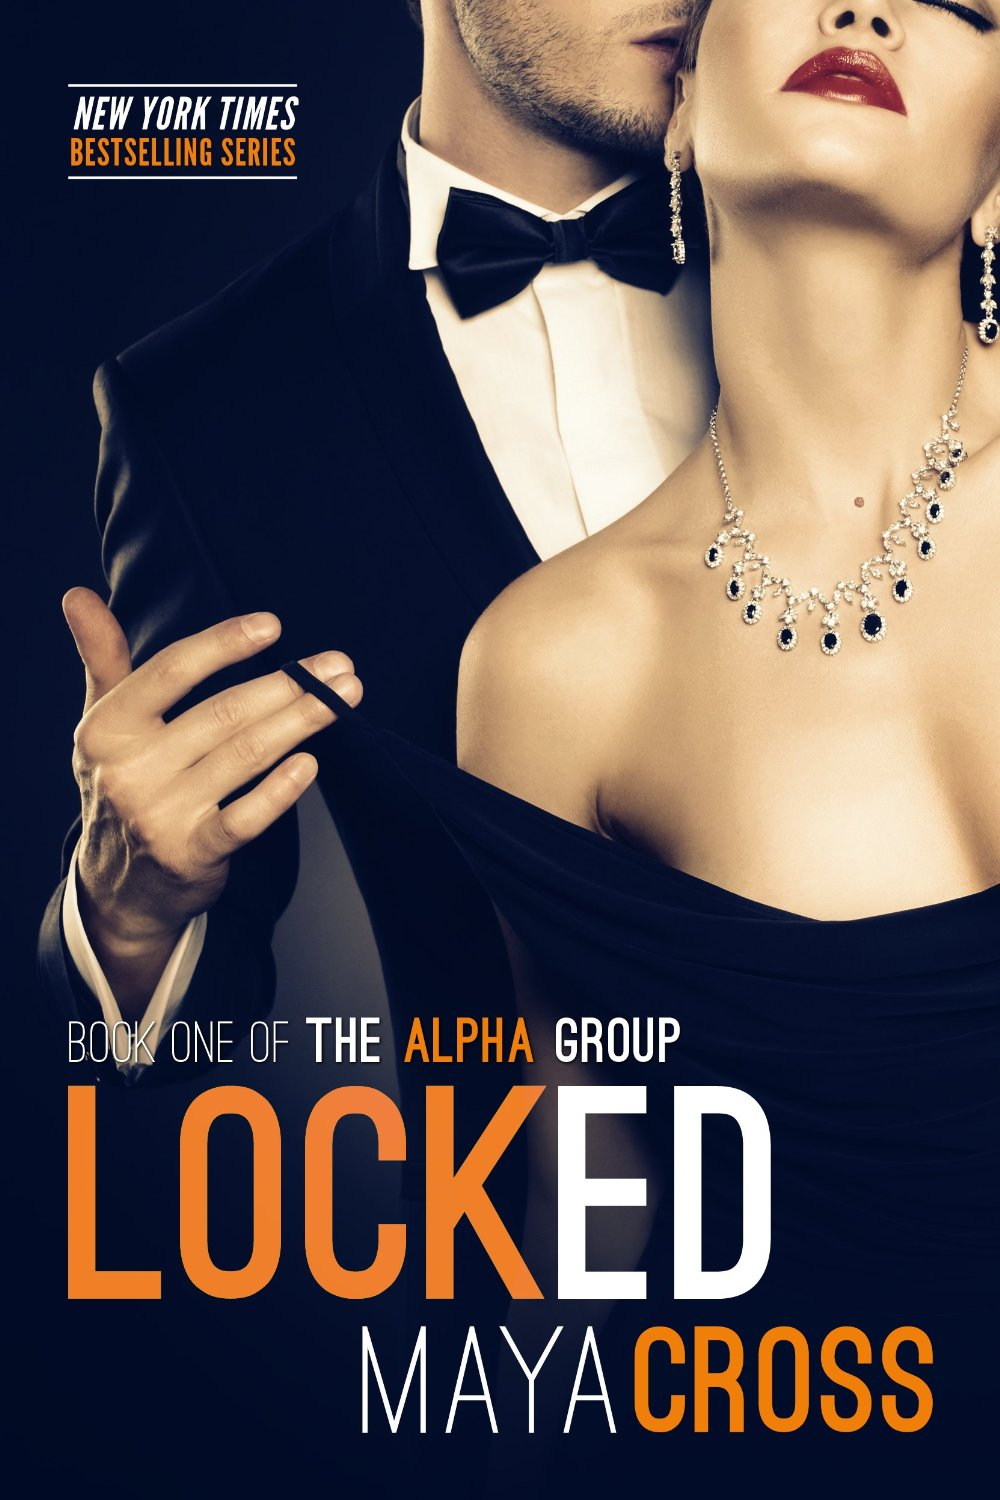 Locked - The Alpha Group book 1